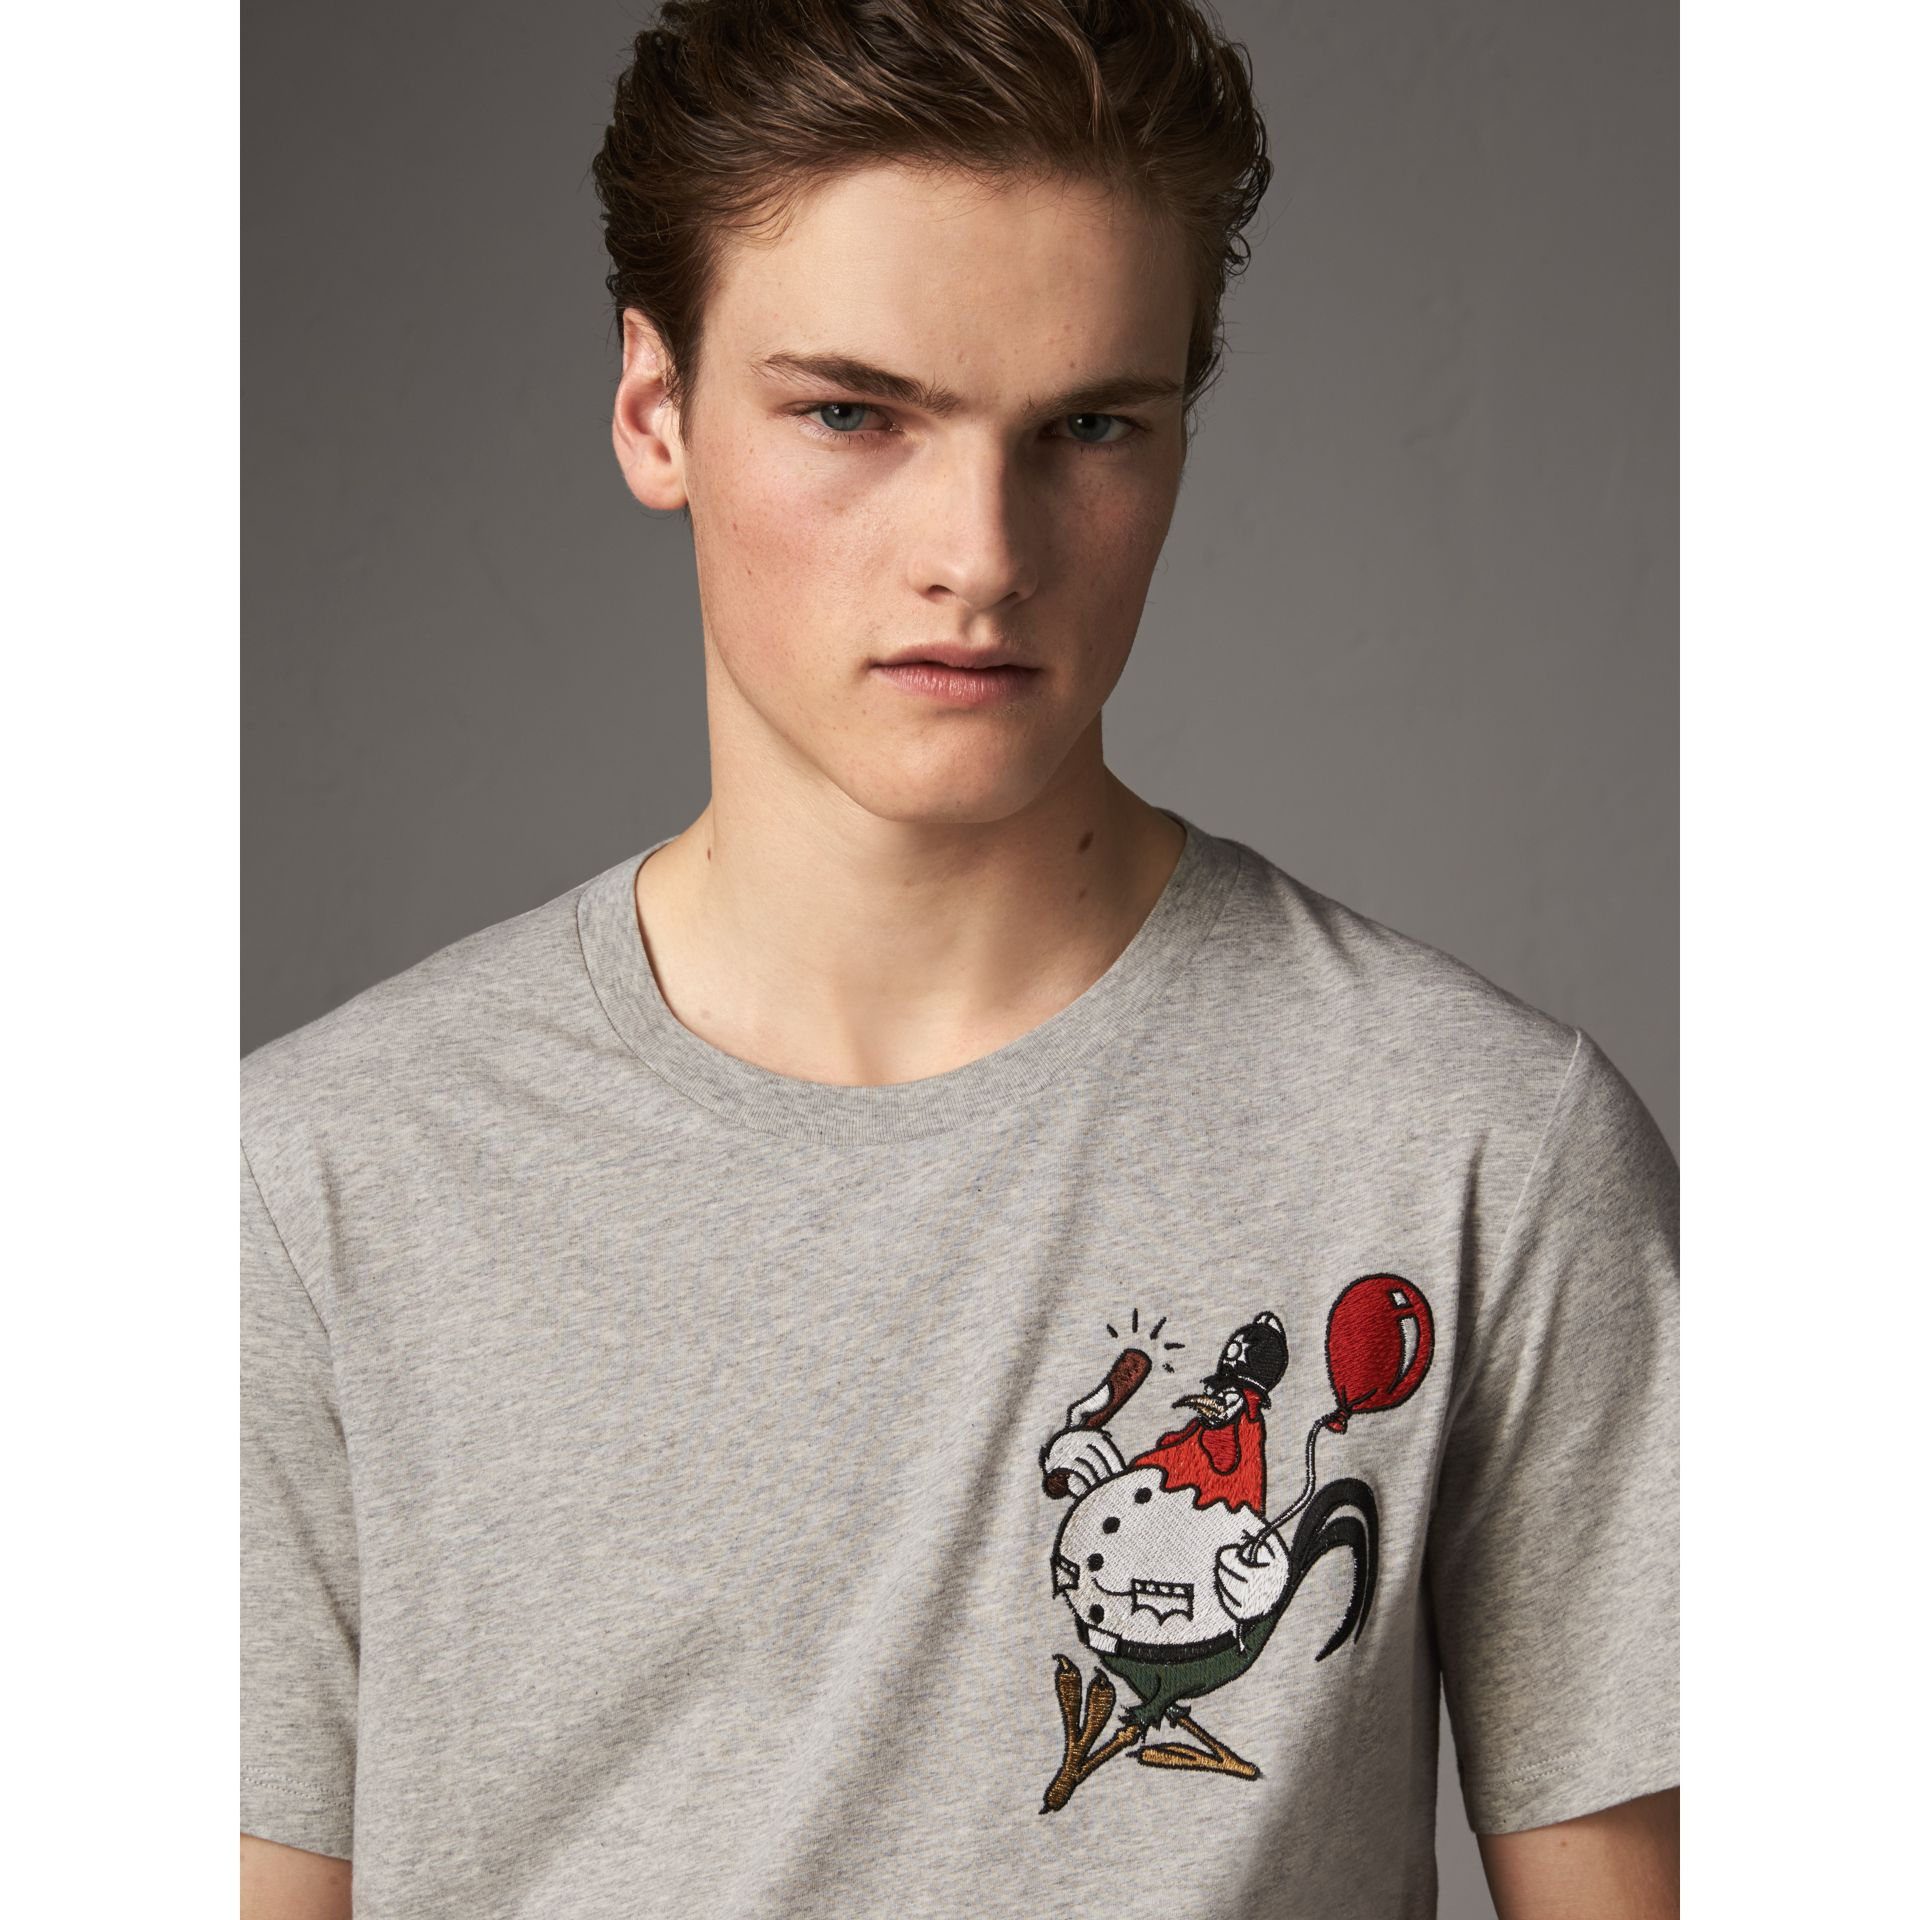 Sketch Appliqué Cotton T-shirt in Pale Grey Melange - Men | Burberry - gallery image 2